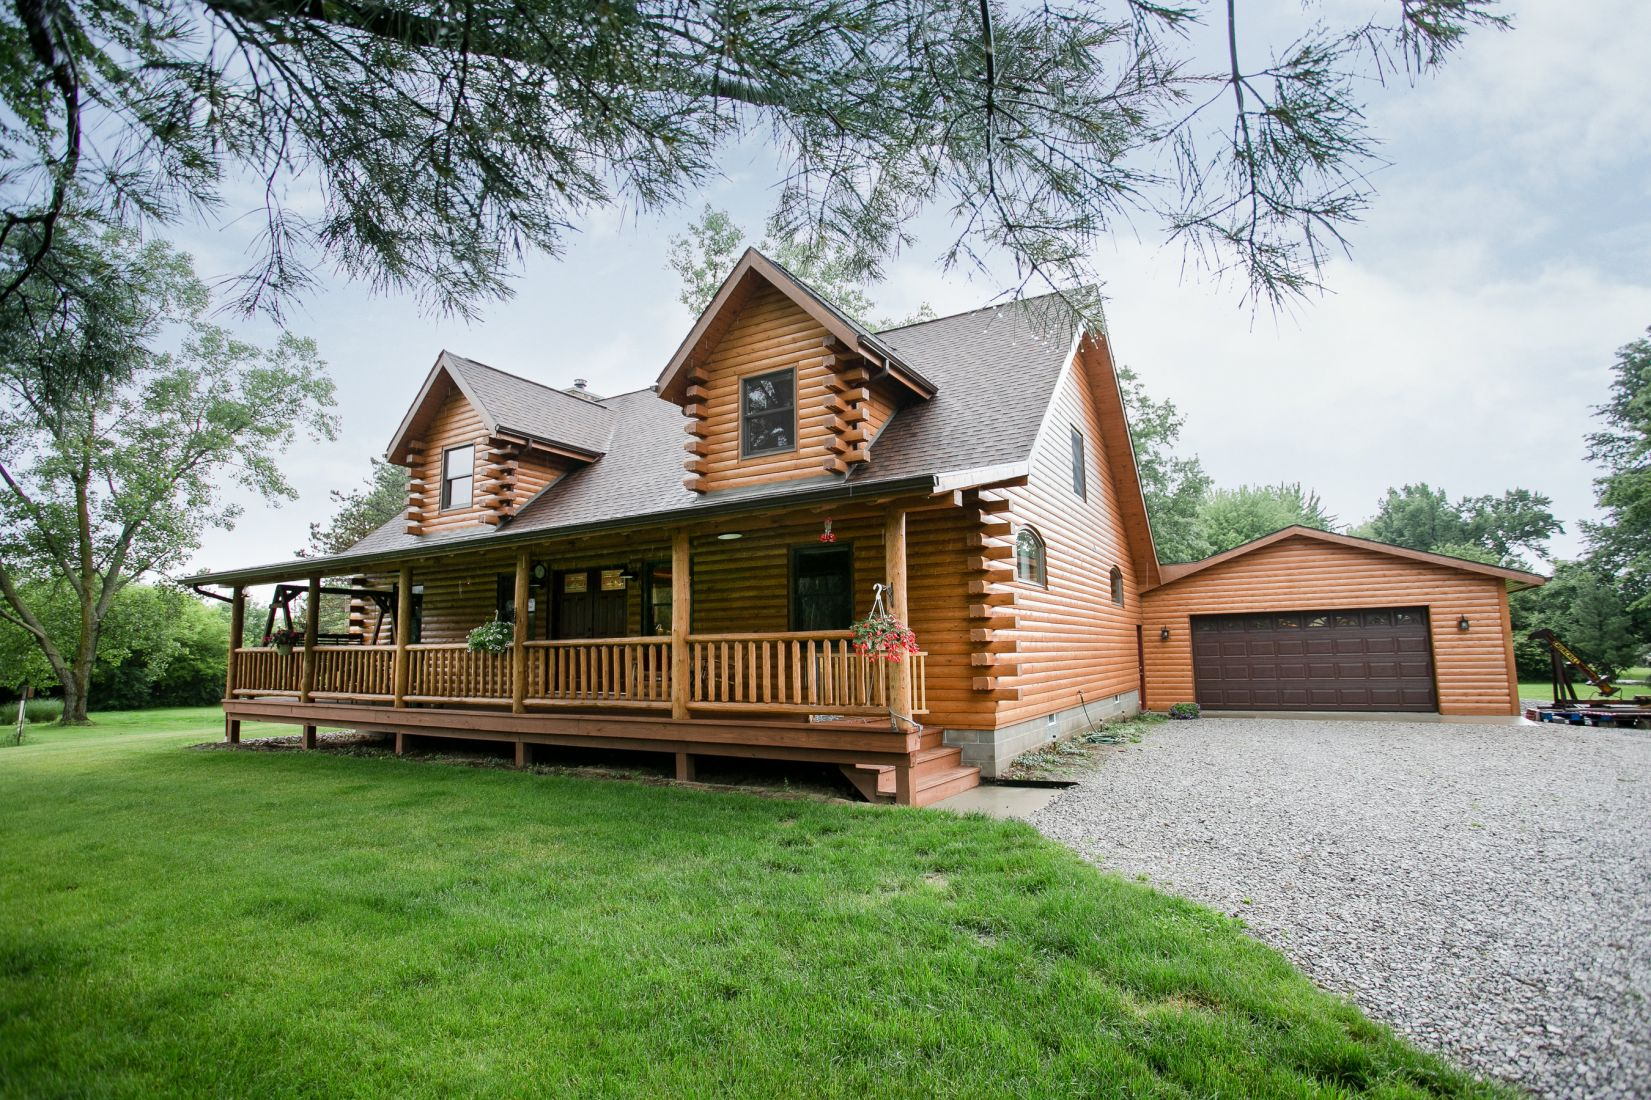 White Cedar Log Home with Brown Shingle Roof and Brown Entry Doors